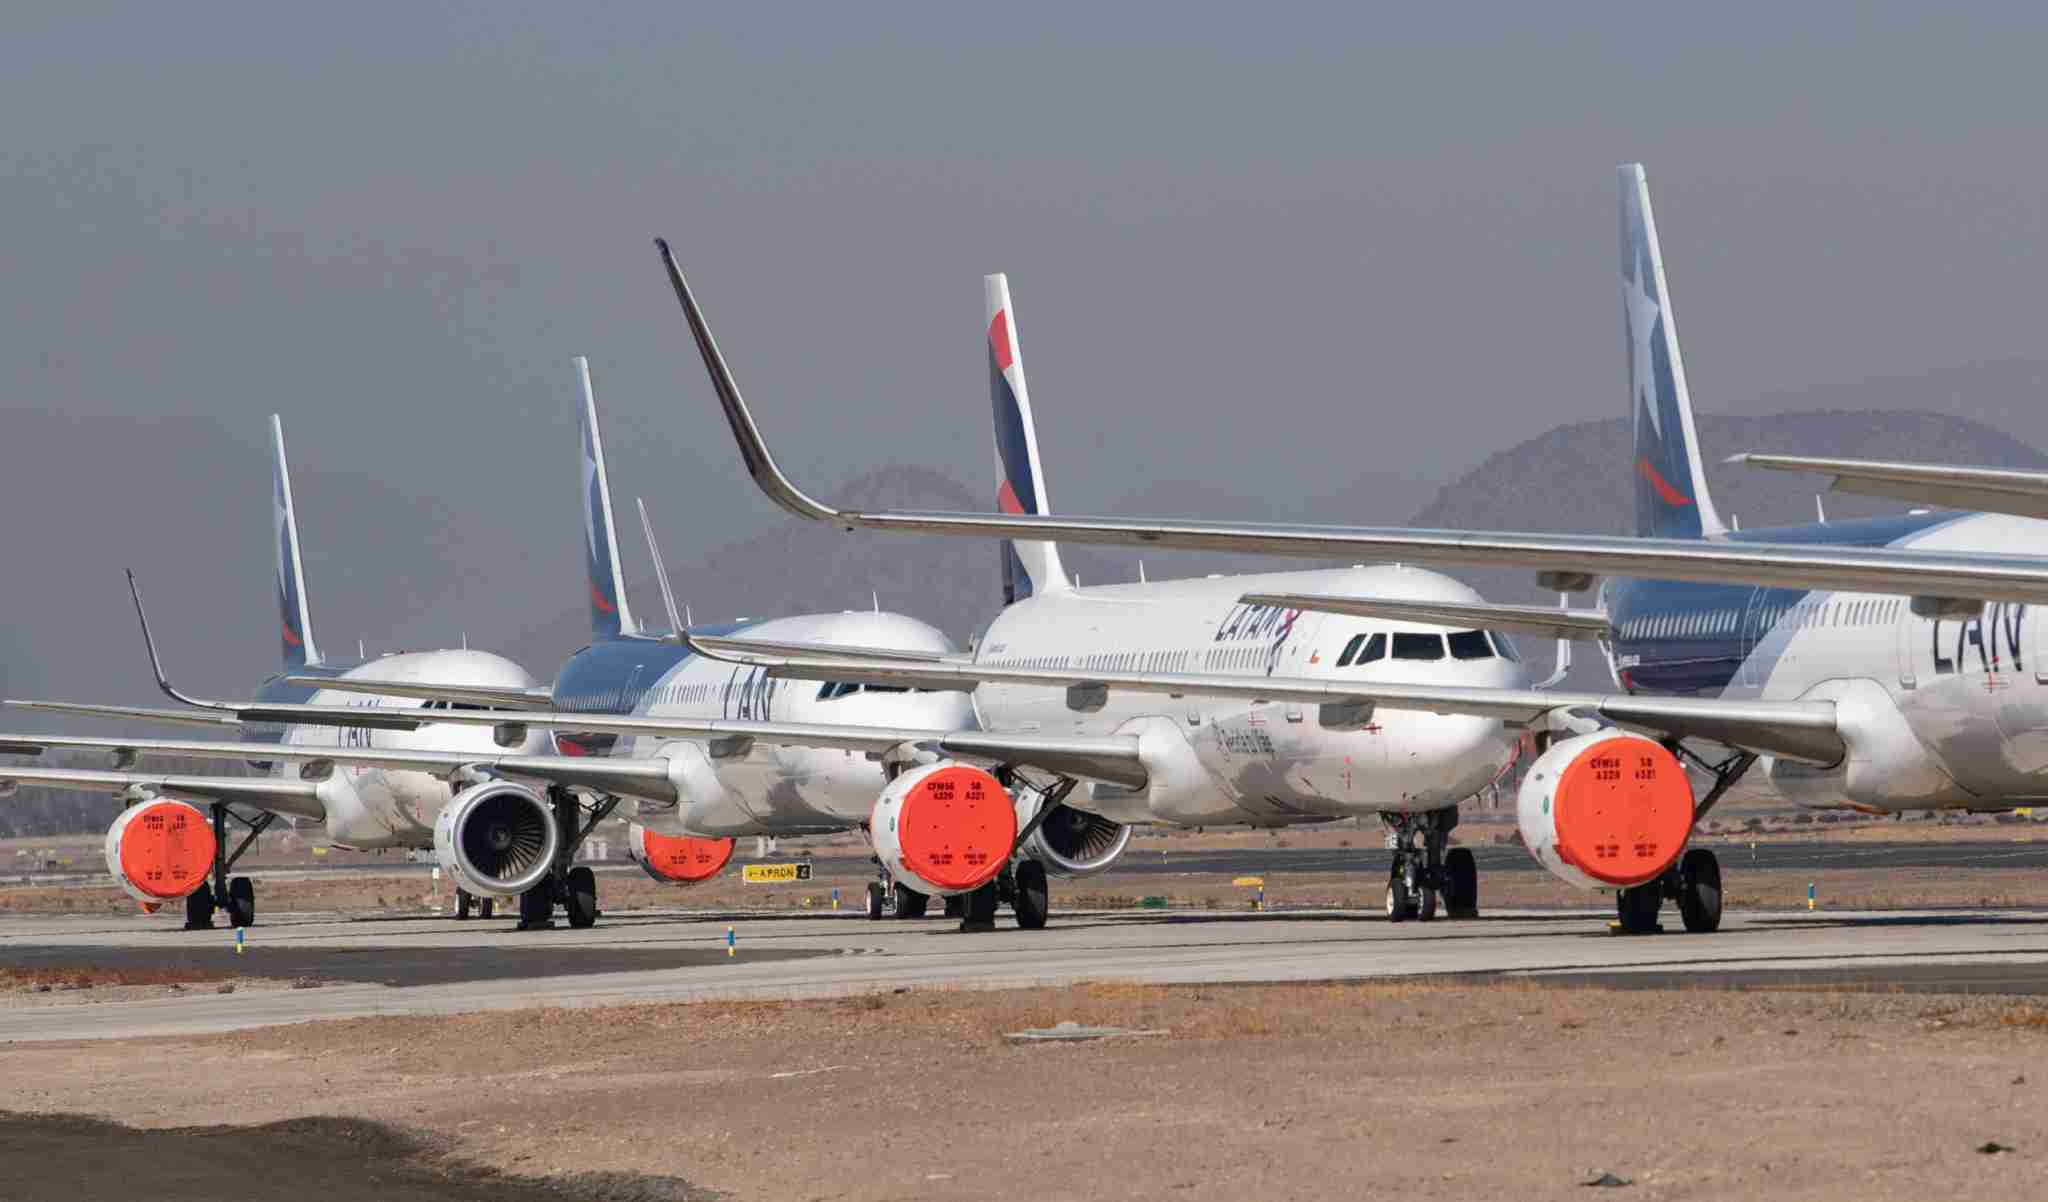 Aircrafts of Latam airline sit on the tarmac at Santiago International Airport, in Santiago, on April 20, 2020 during the new coronavirus, COVID-19, pandemic. - Latin America